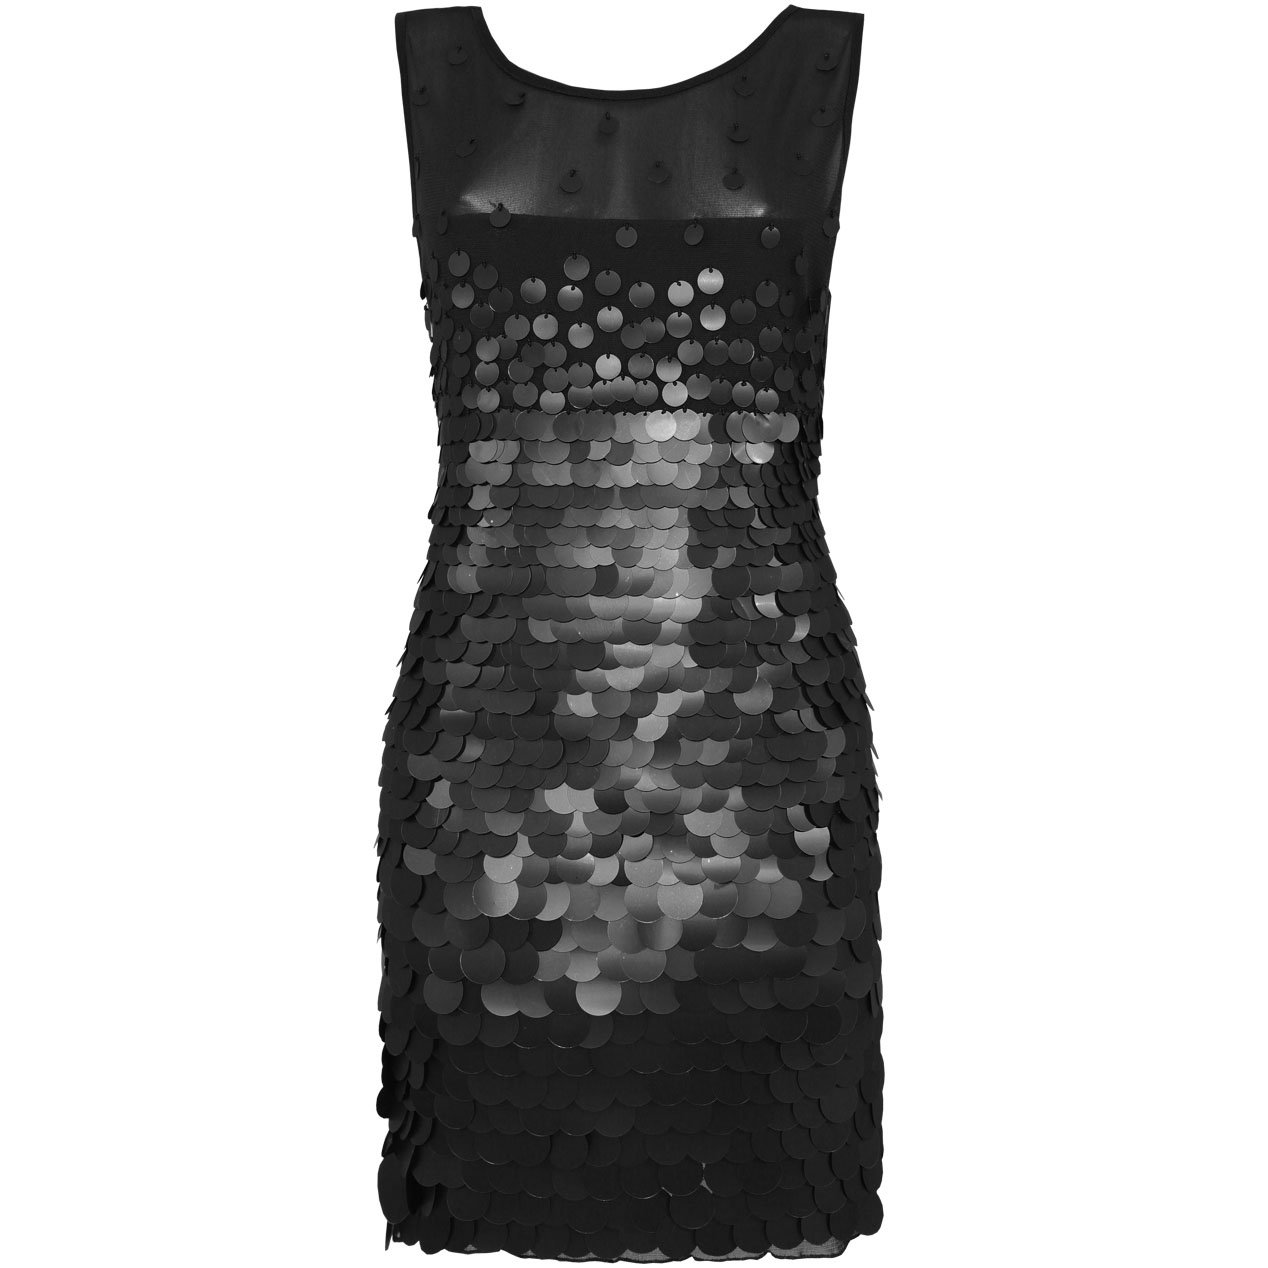 BLACK SEQUIN MESH BODYCON EVENING MINI COCKTAIL CLUBWEAR PARTY PROM DRESS UK SIZE 10-12, US SIZE 6-8